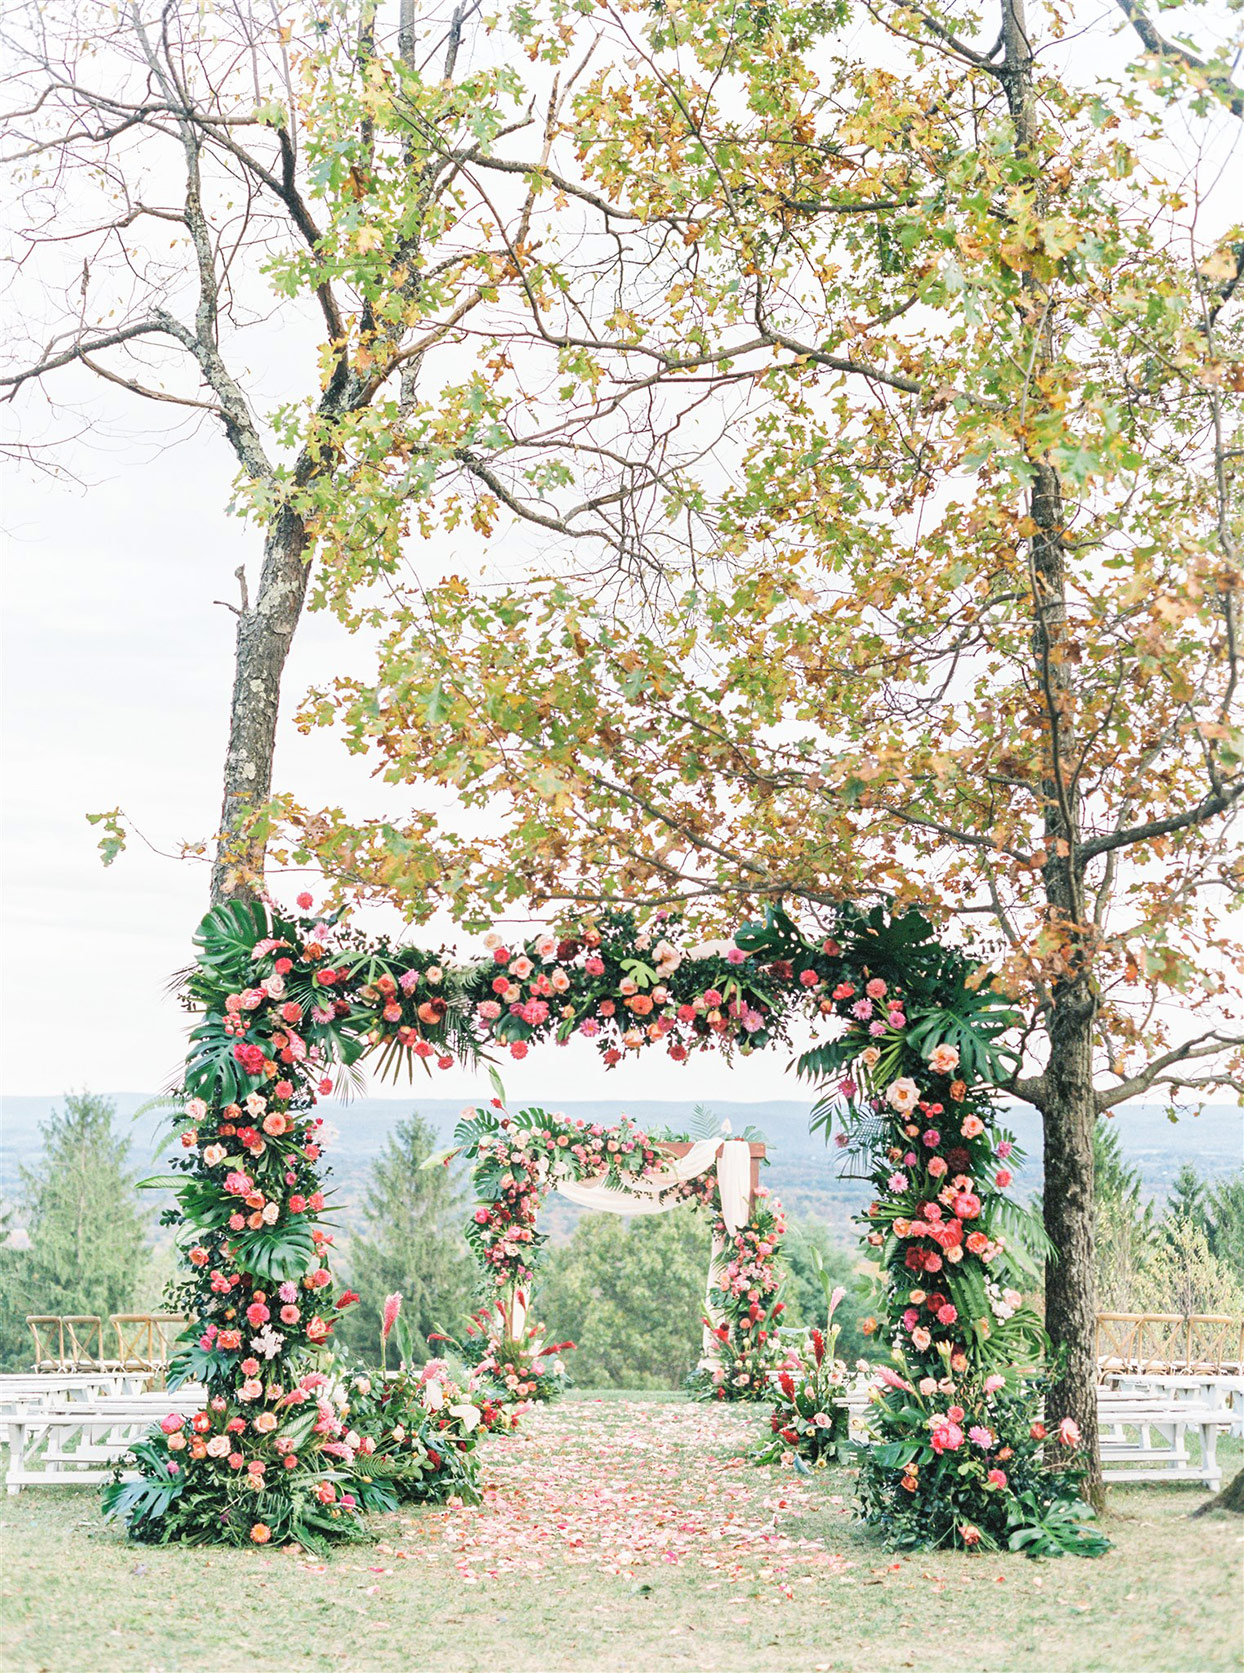 outdoor fall wedding setting with floral arches and petal walkway